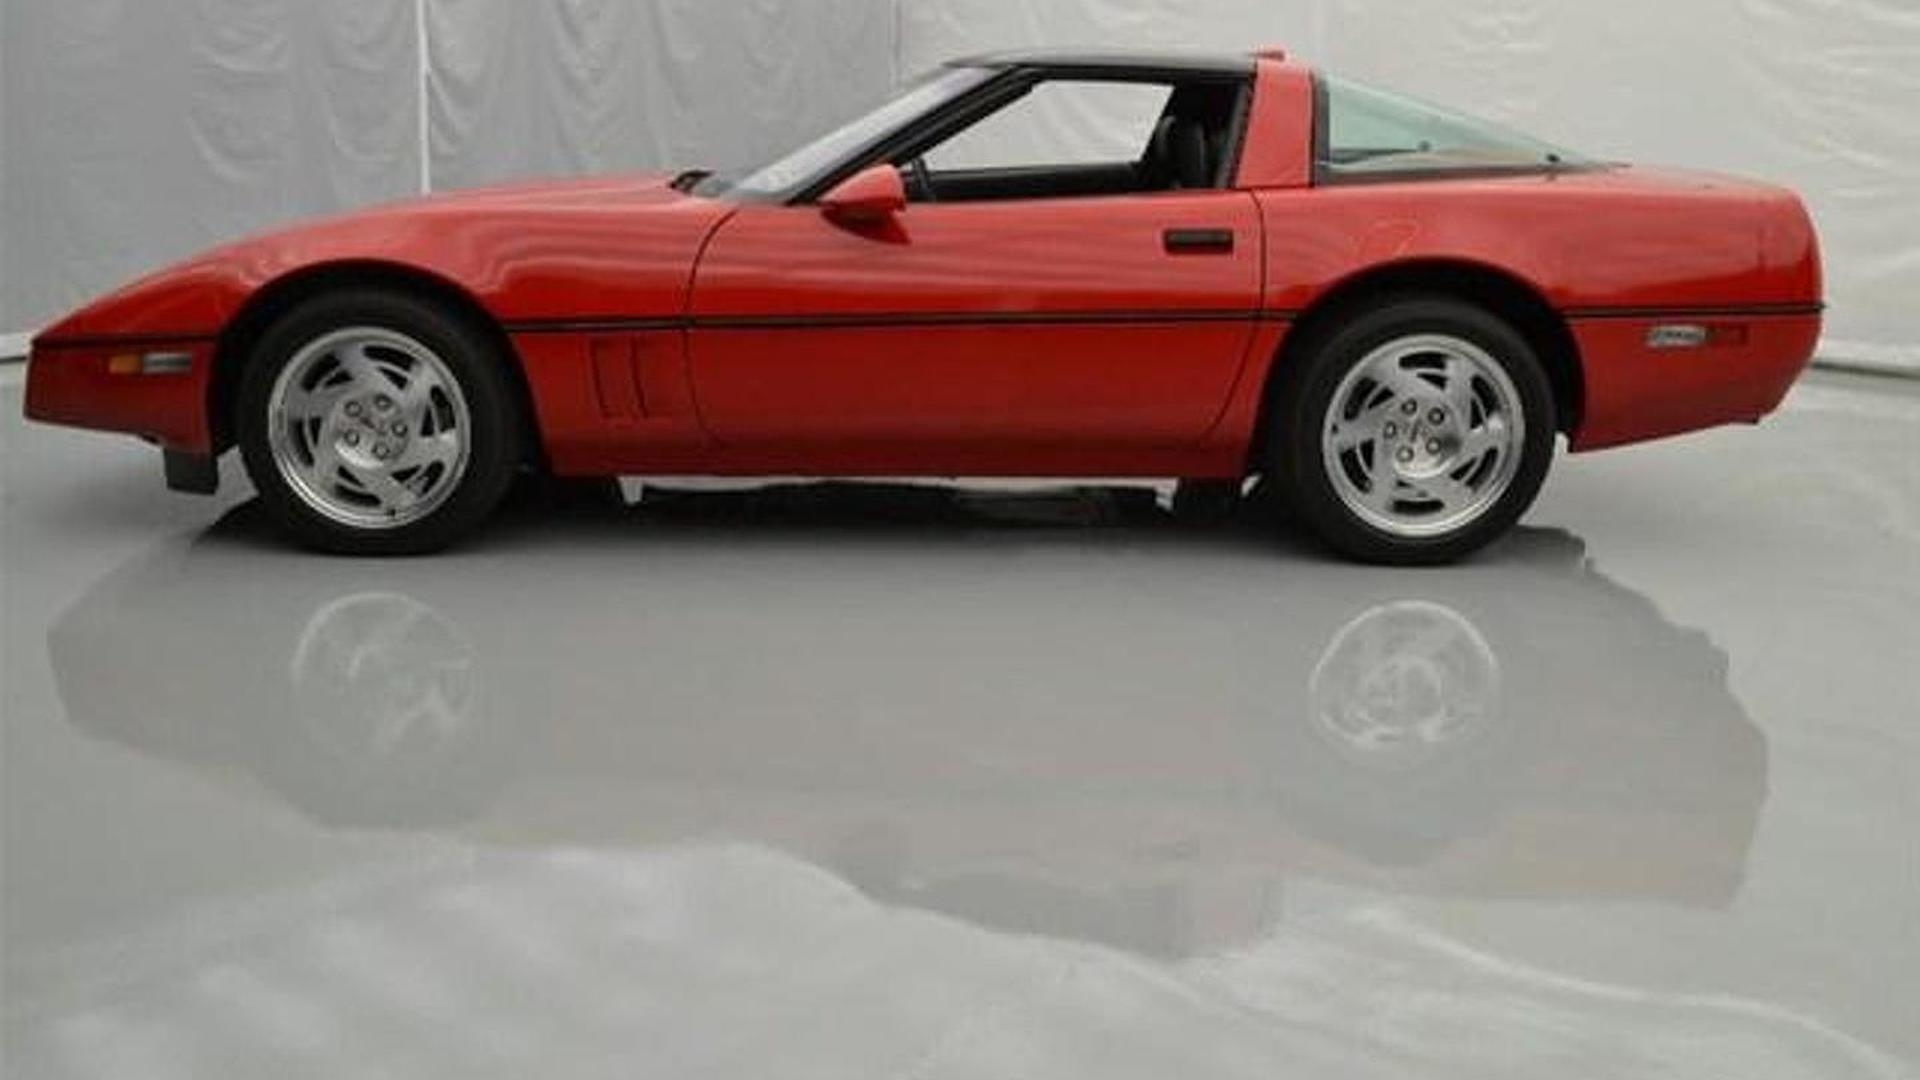 1990 Chevrolet Corvette Zr1 Driven For Only 127 Miles Listed On Ebay 77 Pics